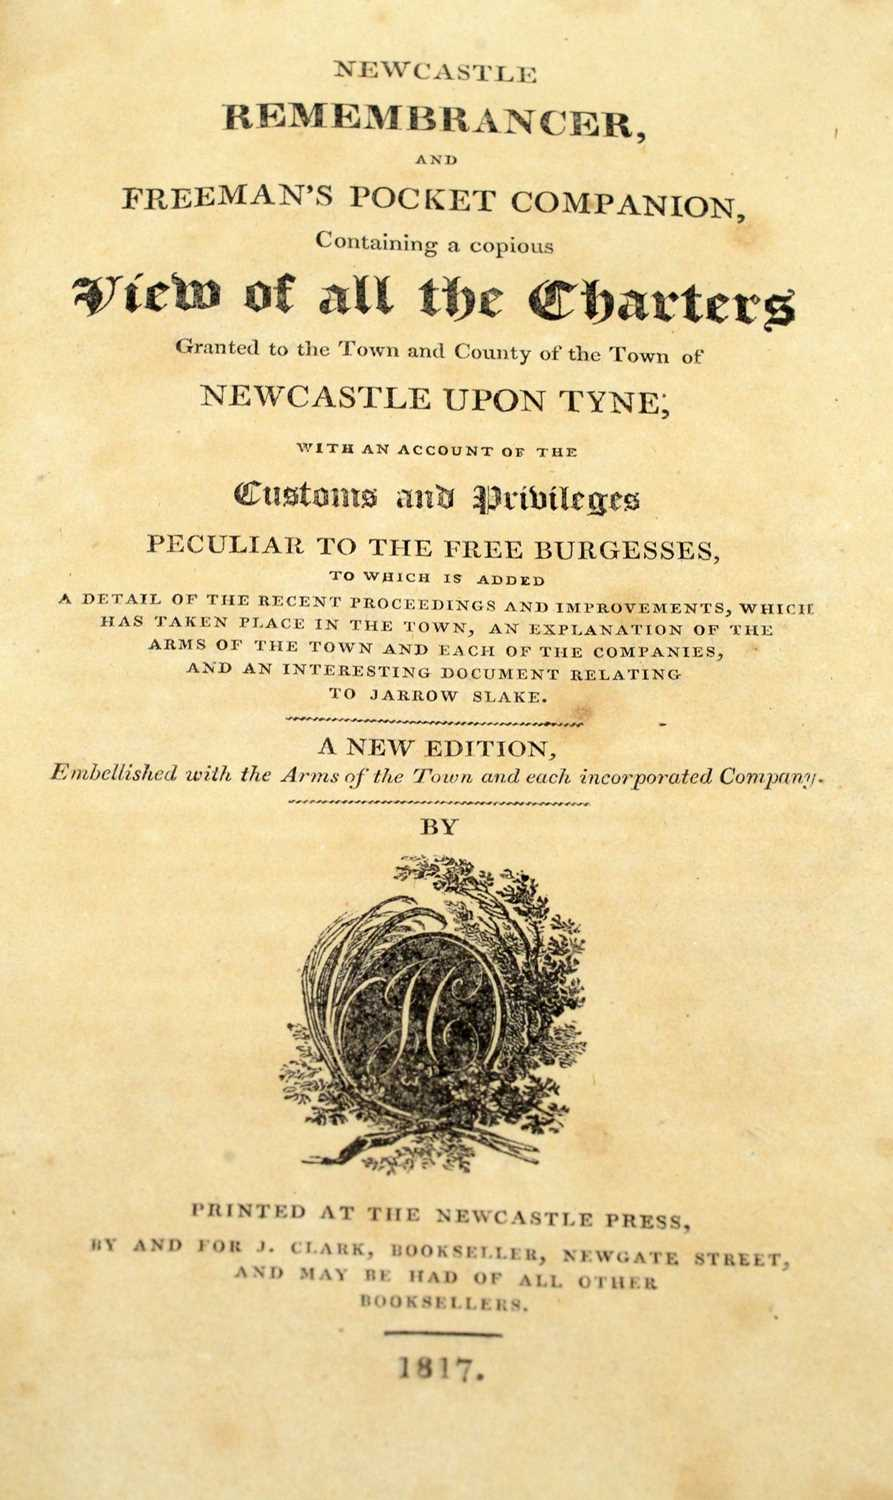 Baillie (J.), An Impartial History of Newcastle... and Newcastle interest books - Image 5 of 5